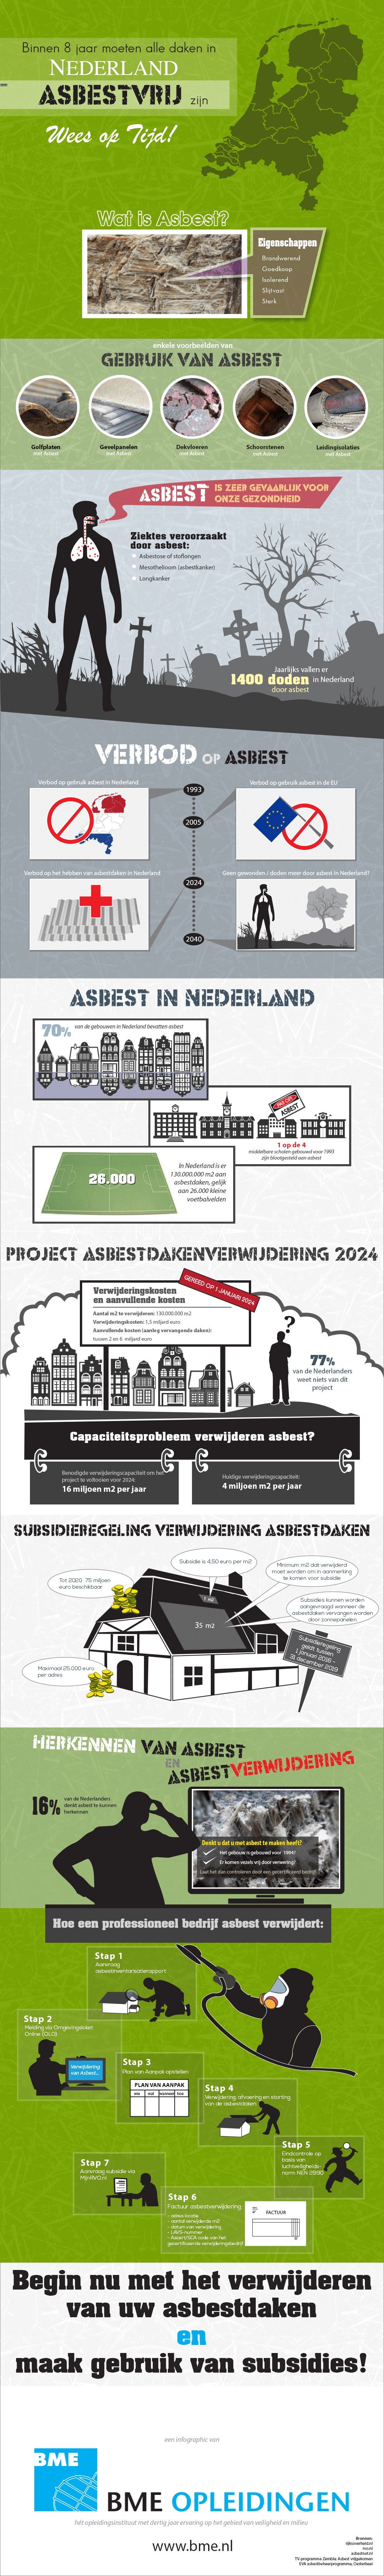 Infographic Asbest vrij in 2014?